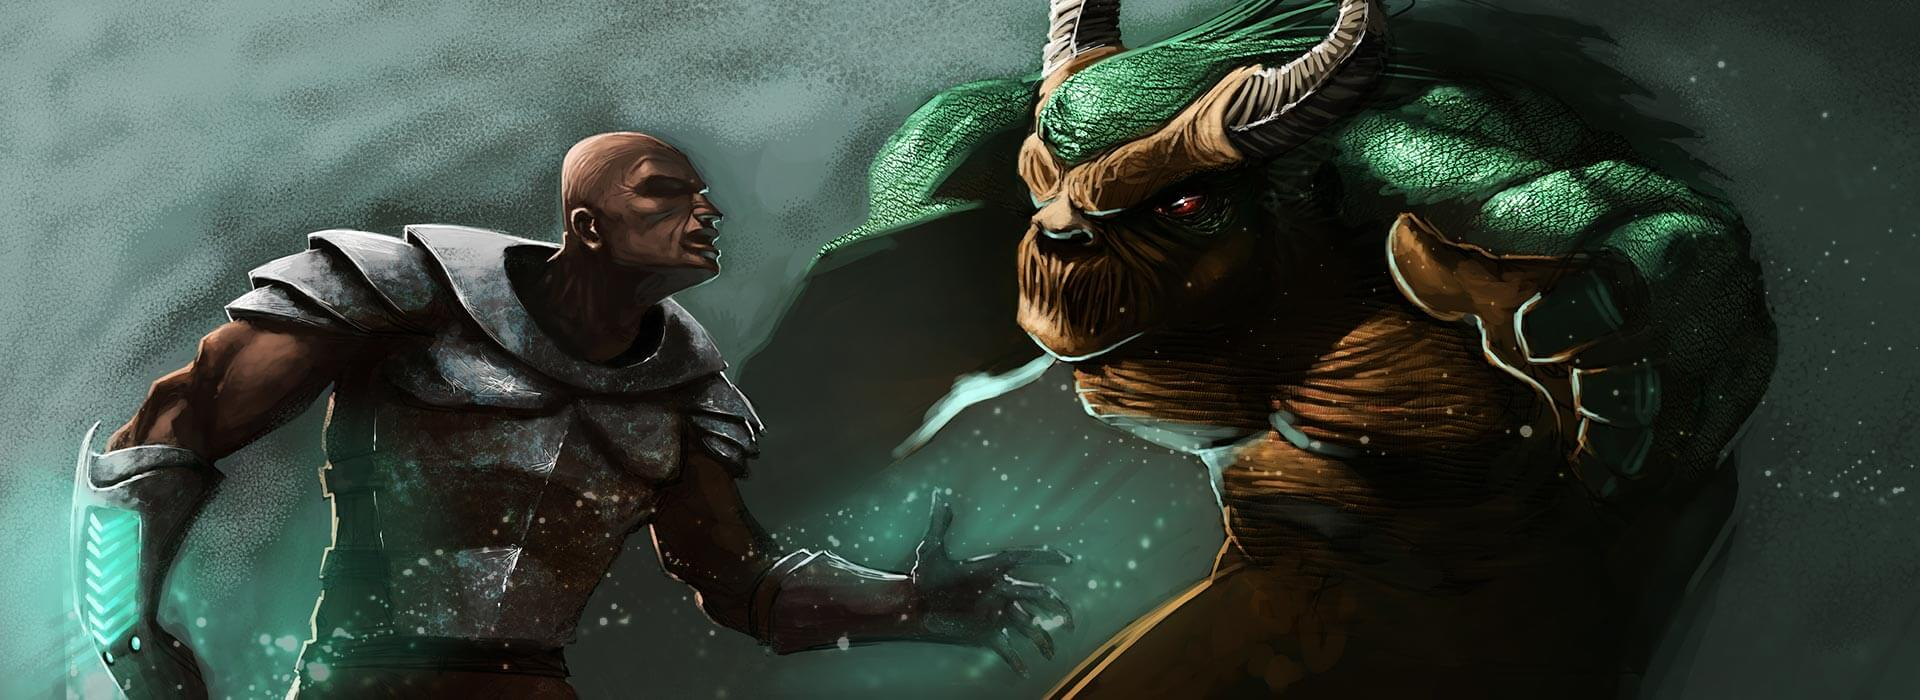 DOTA 2: ALL YOU NEED TO KNOW